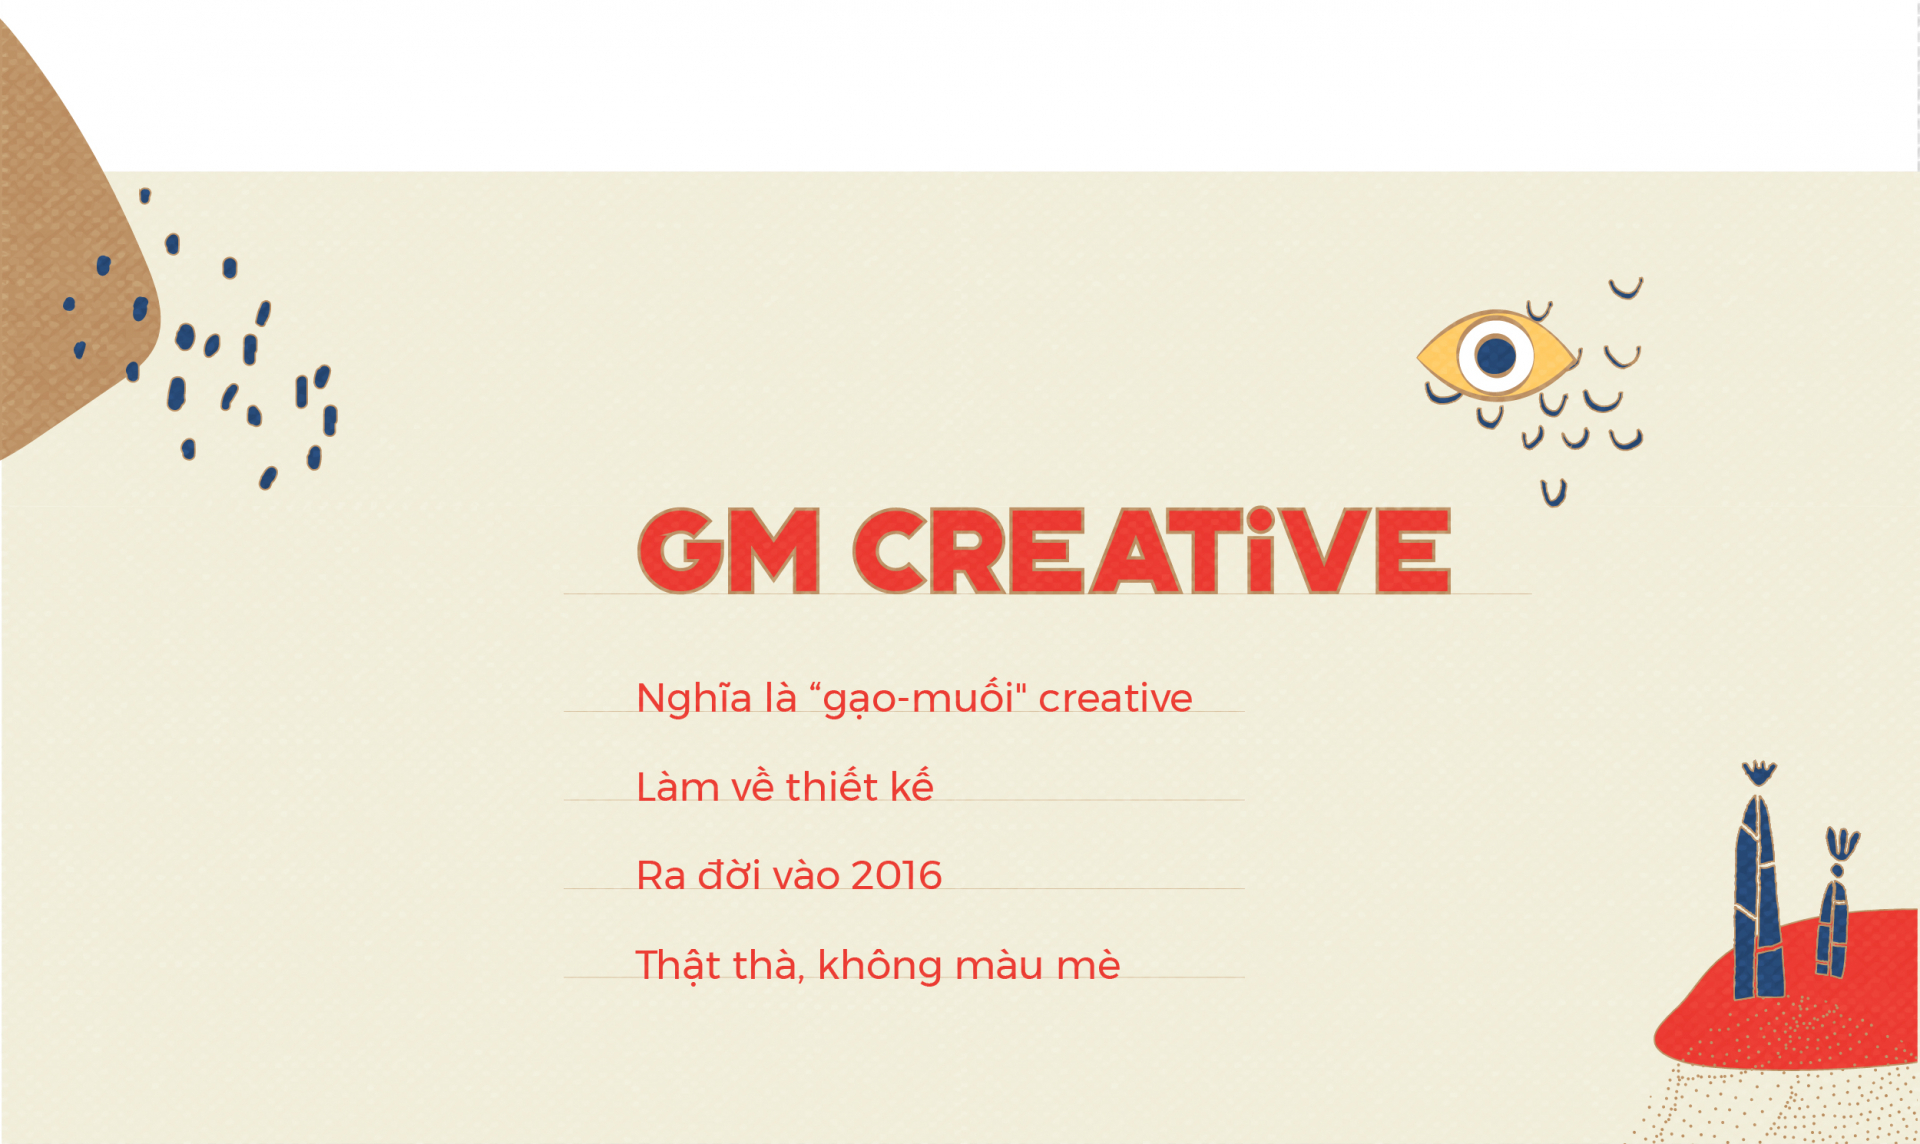 20180713 idesign gmcreative 2 info 1